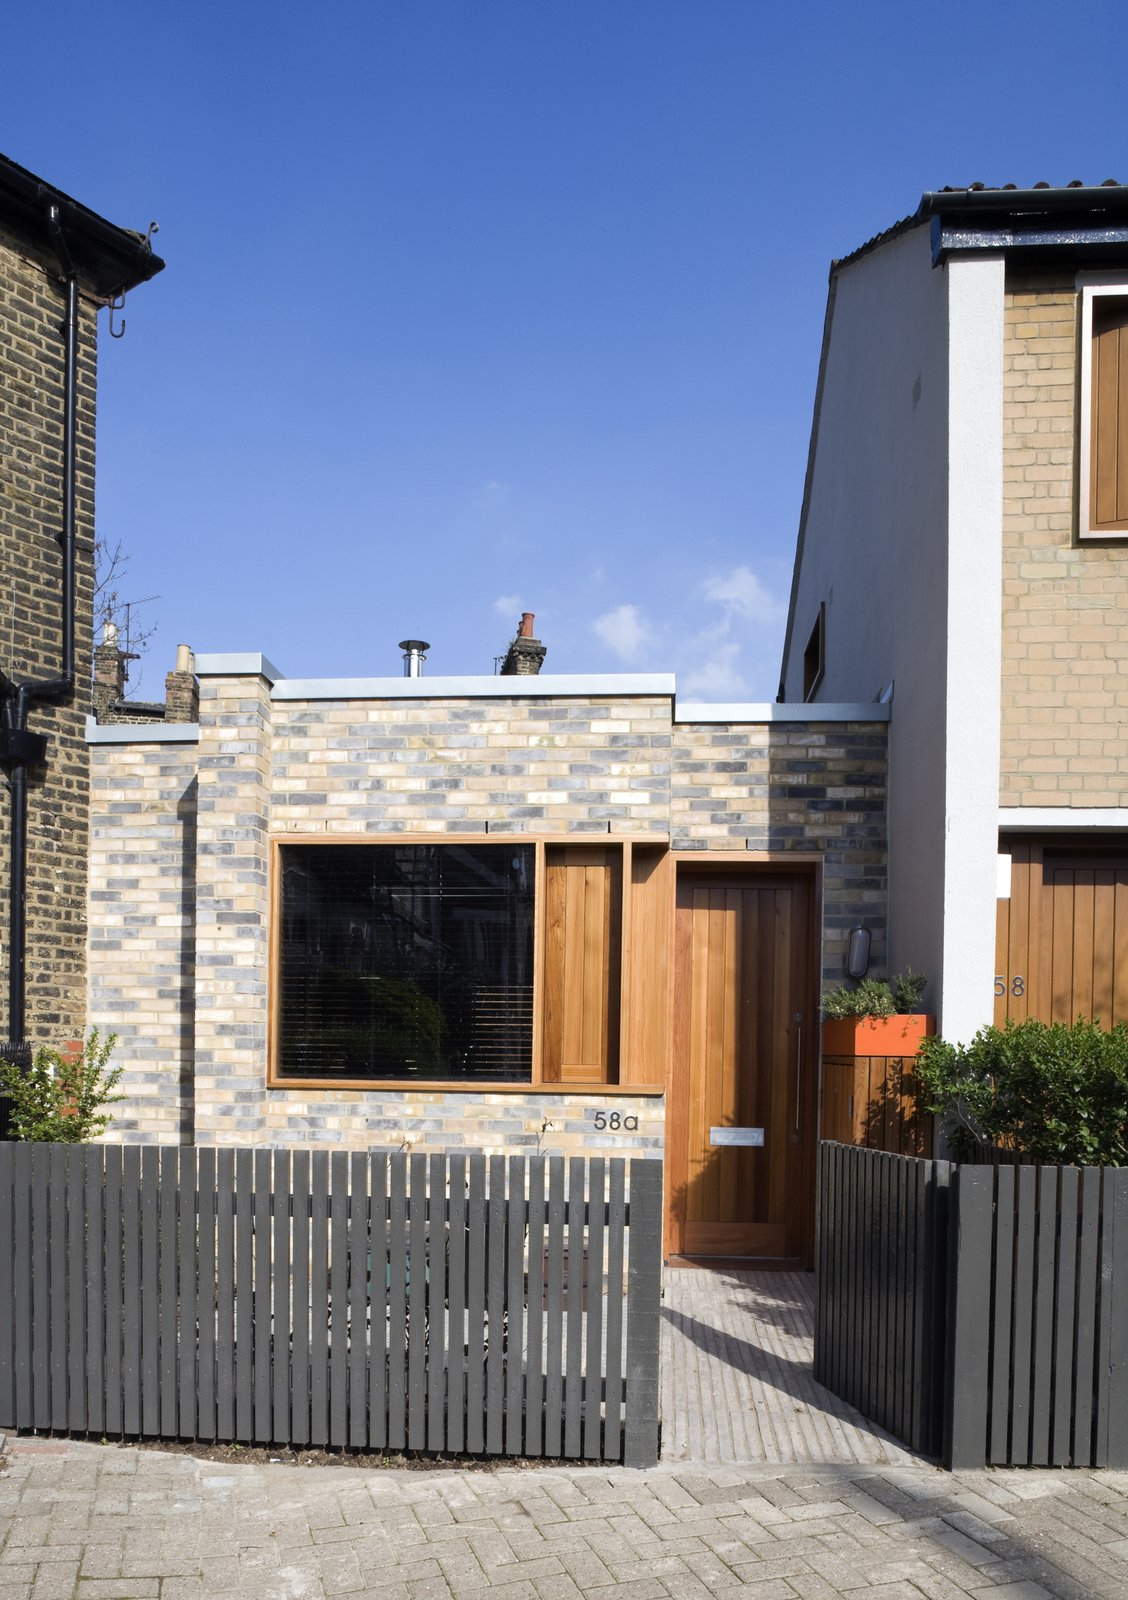 """We have described the house as an urban cabin and this captures the essential character we were seeking to achieve,"" says architect Charles Thomson. ""Because the plan is so tight, it was critical that every part was considered carefully. But we also wanted spaces that were simple and flexible to accommodate the typical range of family activities.""  Islington Residence by Kelly Dawson"